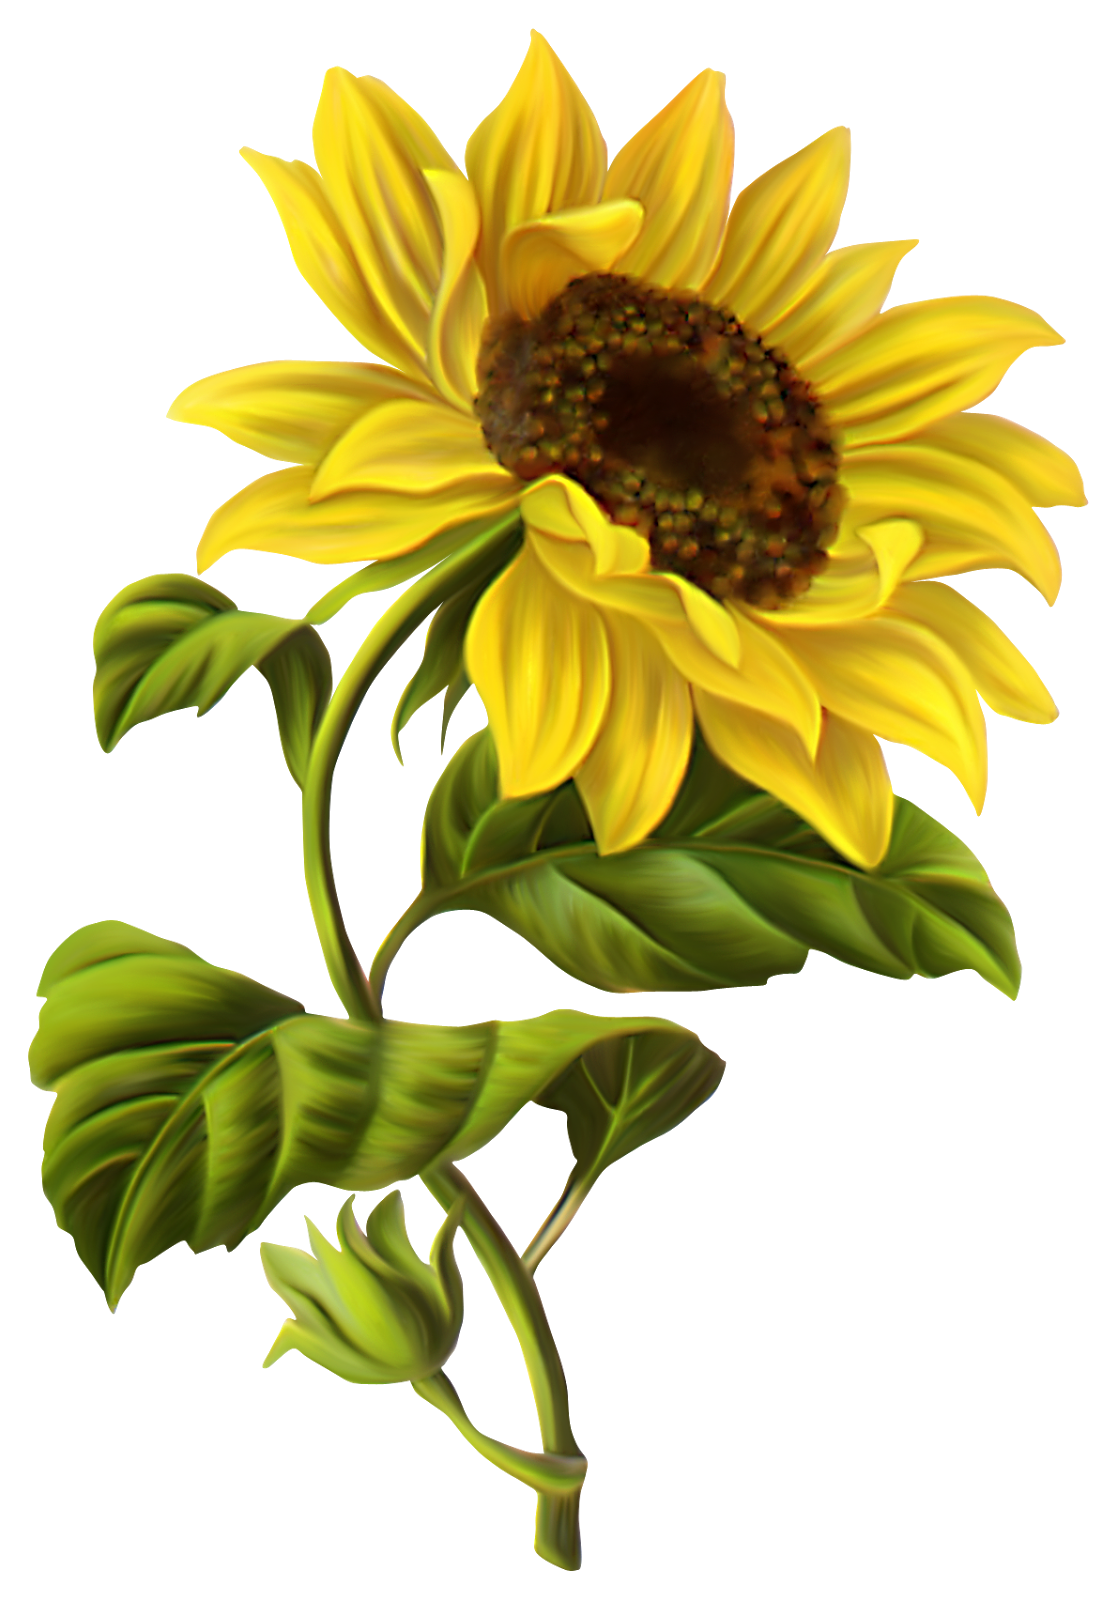 Watercolor sunflower png. Sunflowers google search pinterest